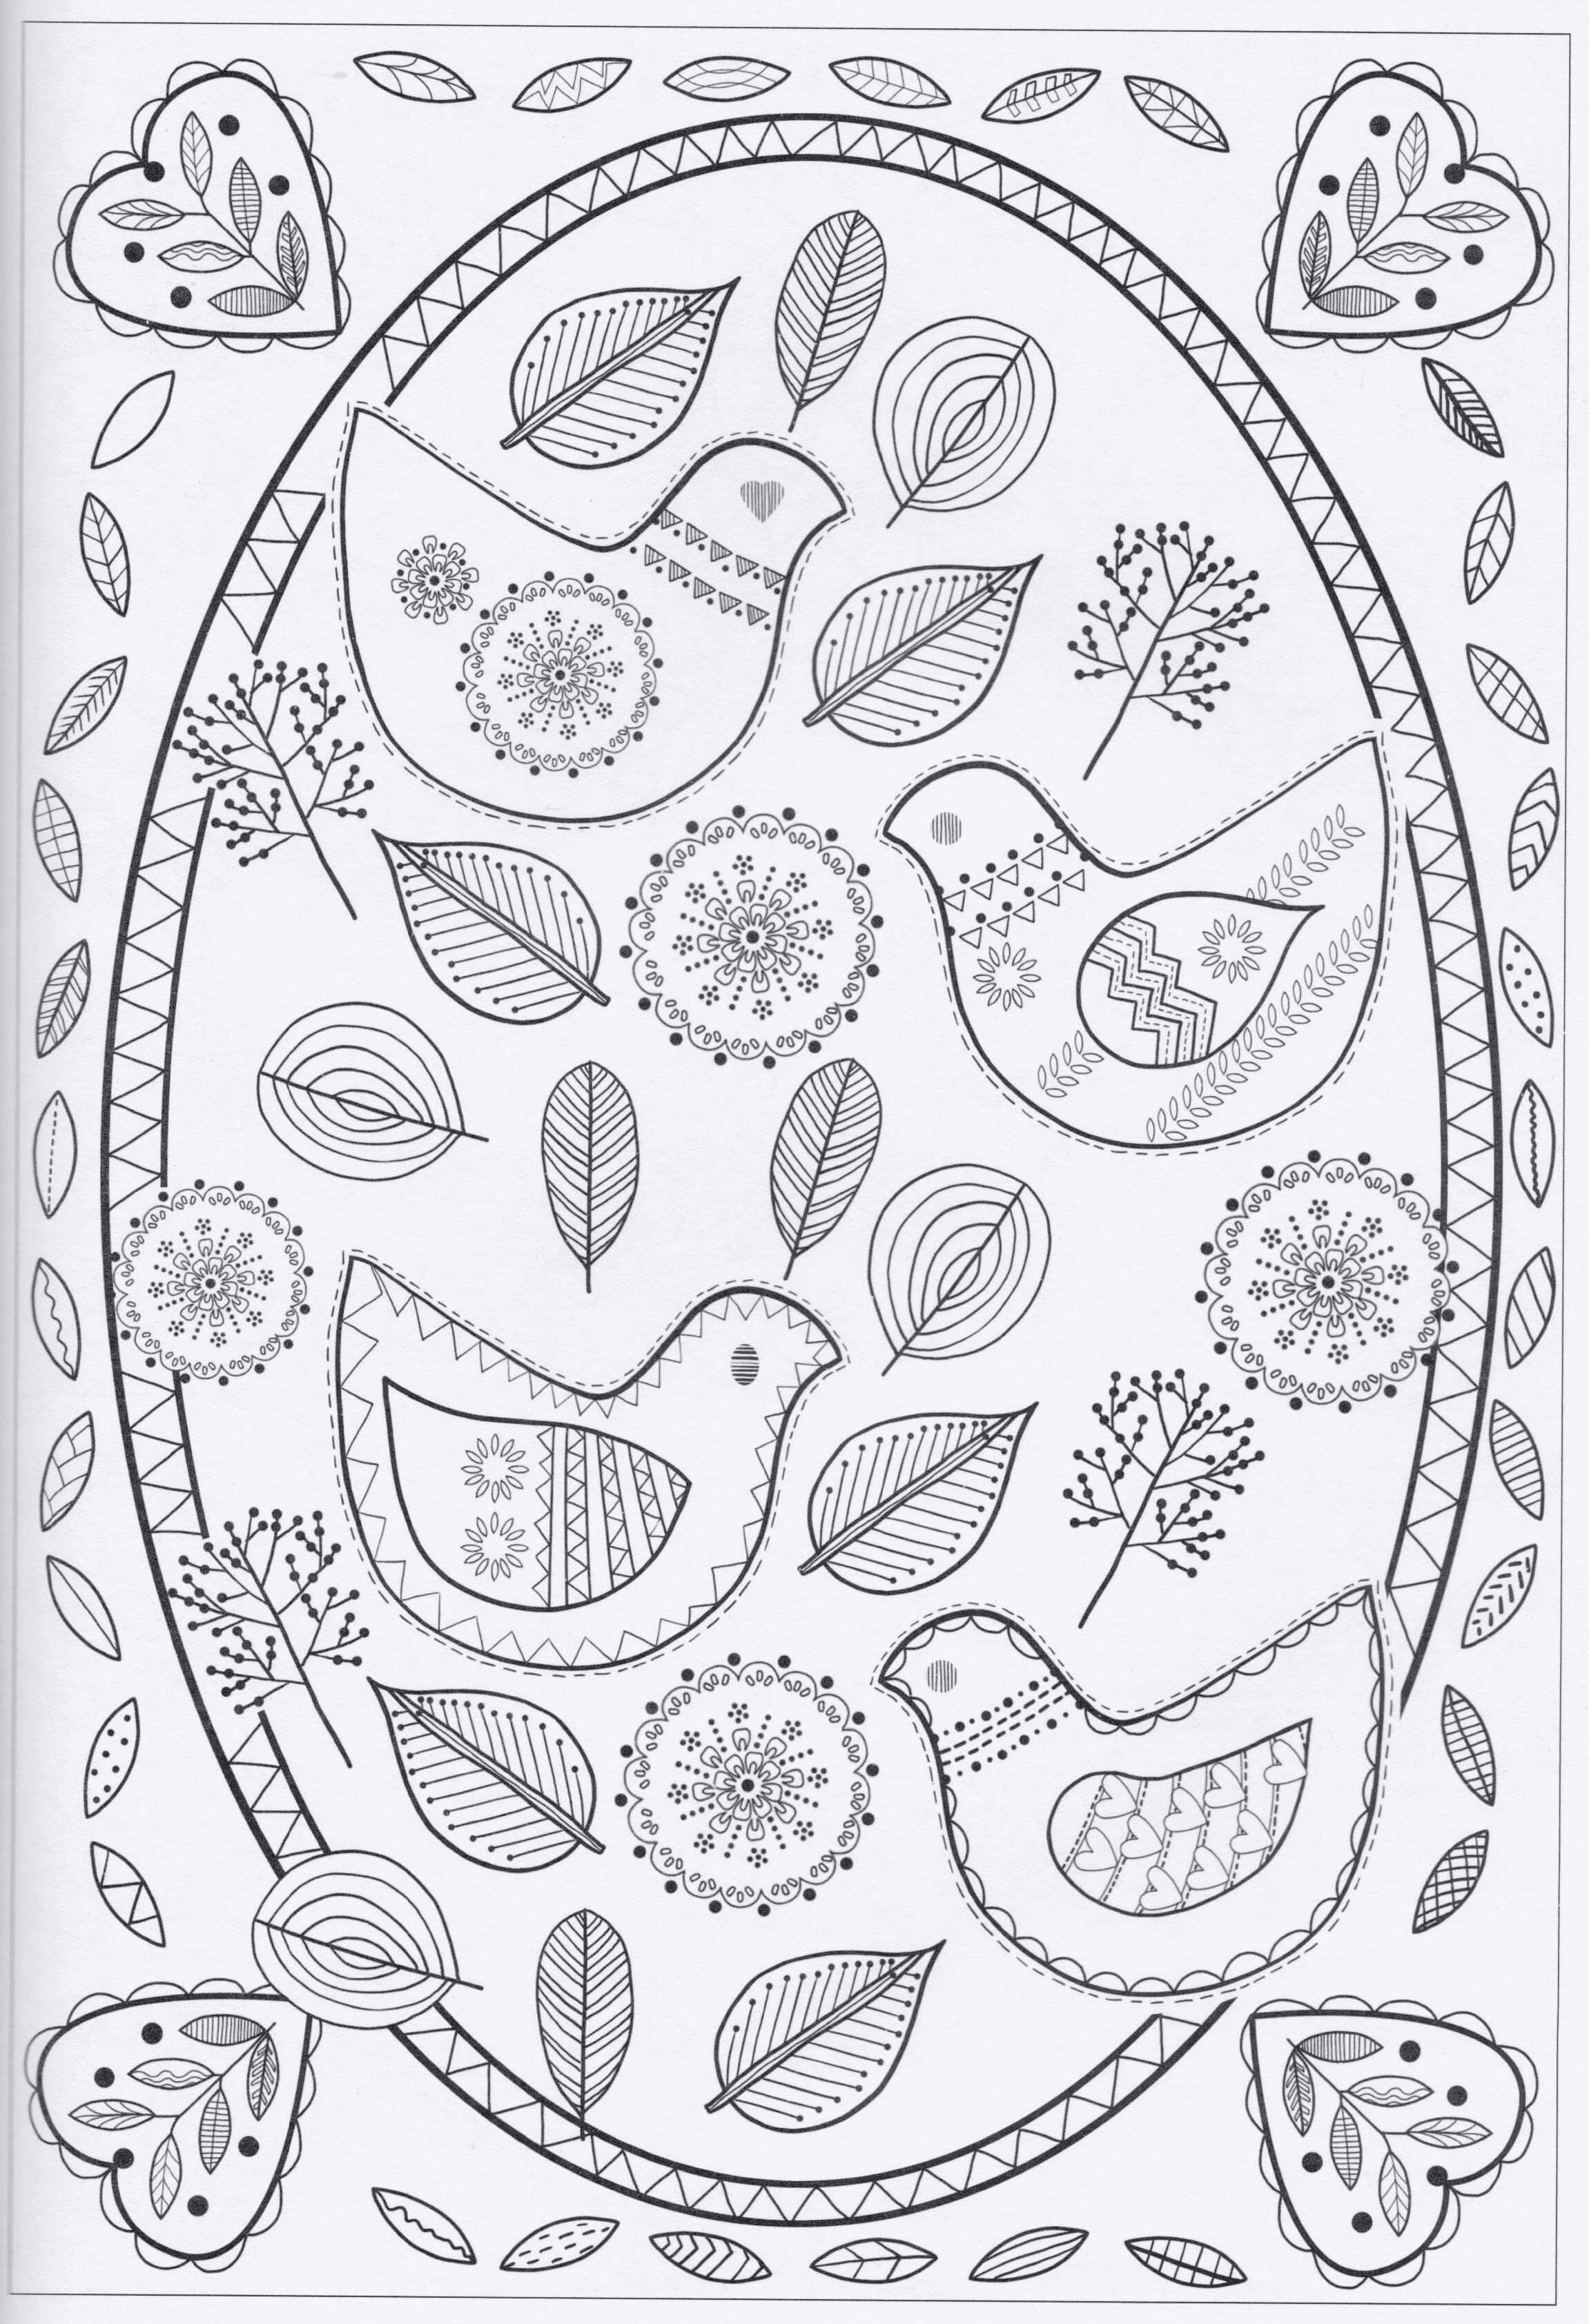 Pokemon Free Coloring Pages Lovely Coloring Pages For Seniors Fresh New Pokemon Coloring Pages Love Coloring Pages Designs Coloring Books Bird Coloring Pages